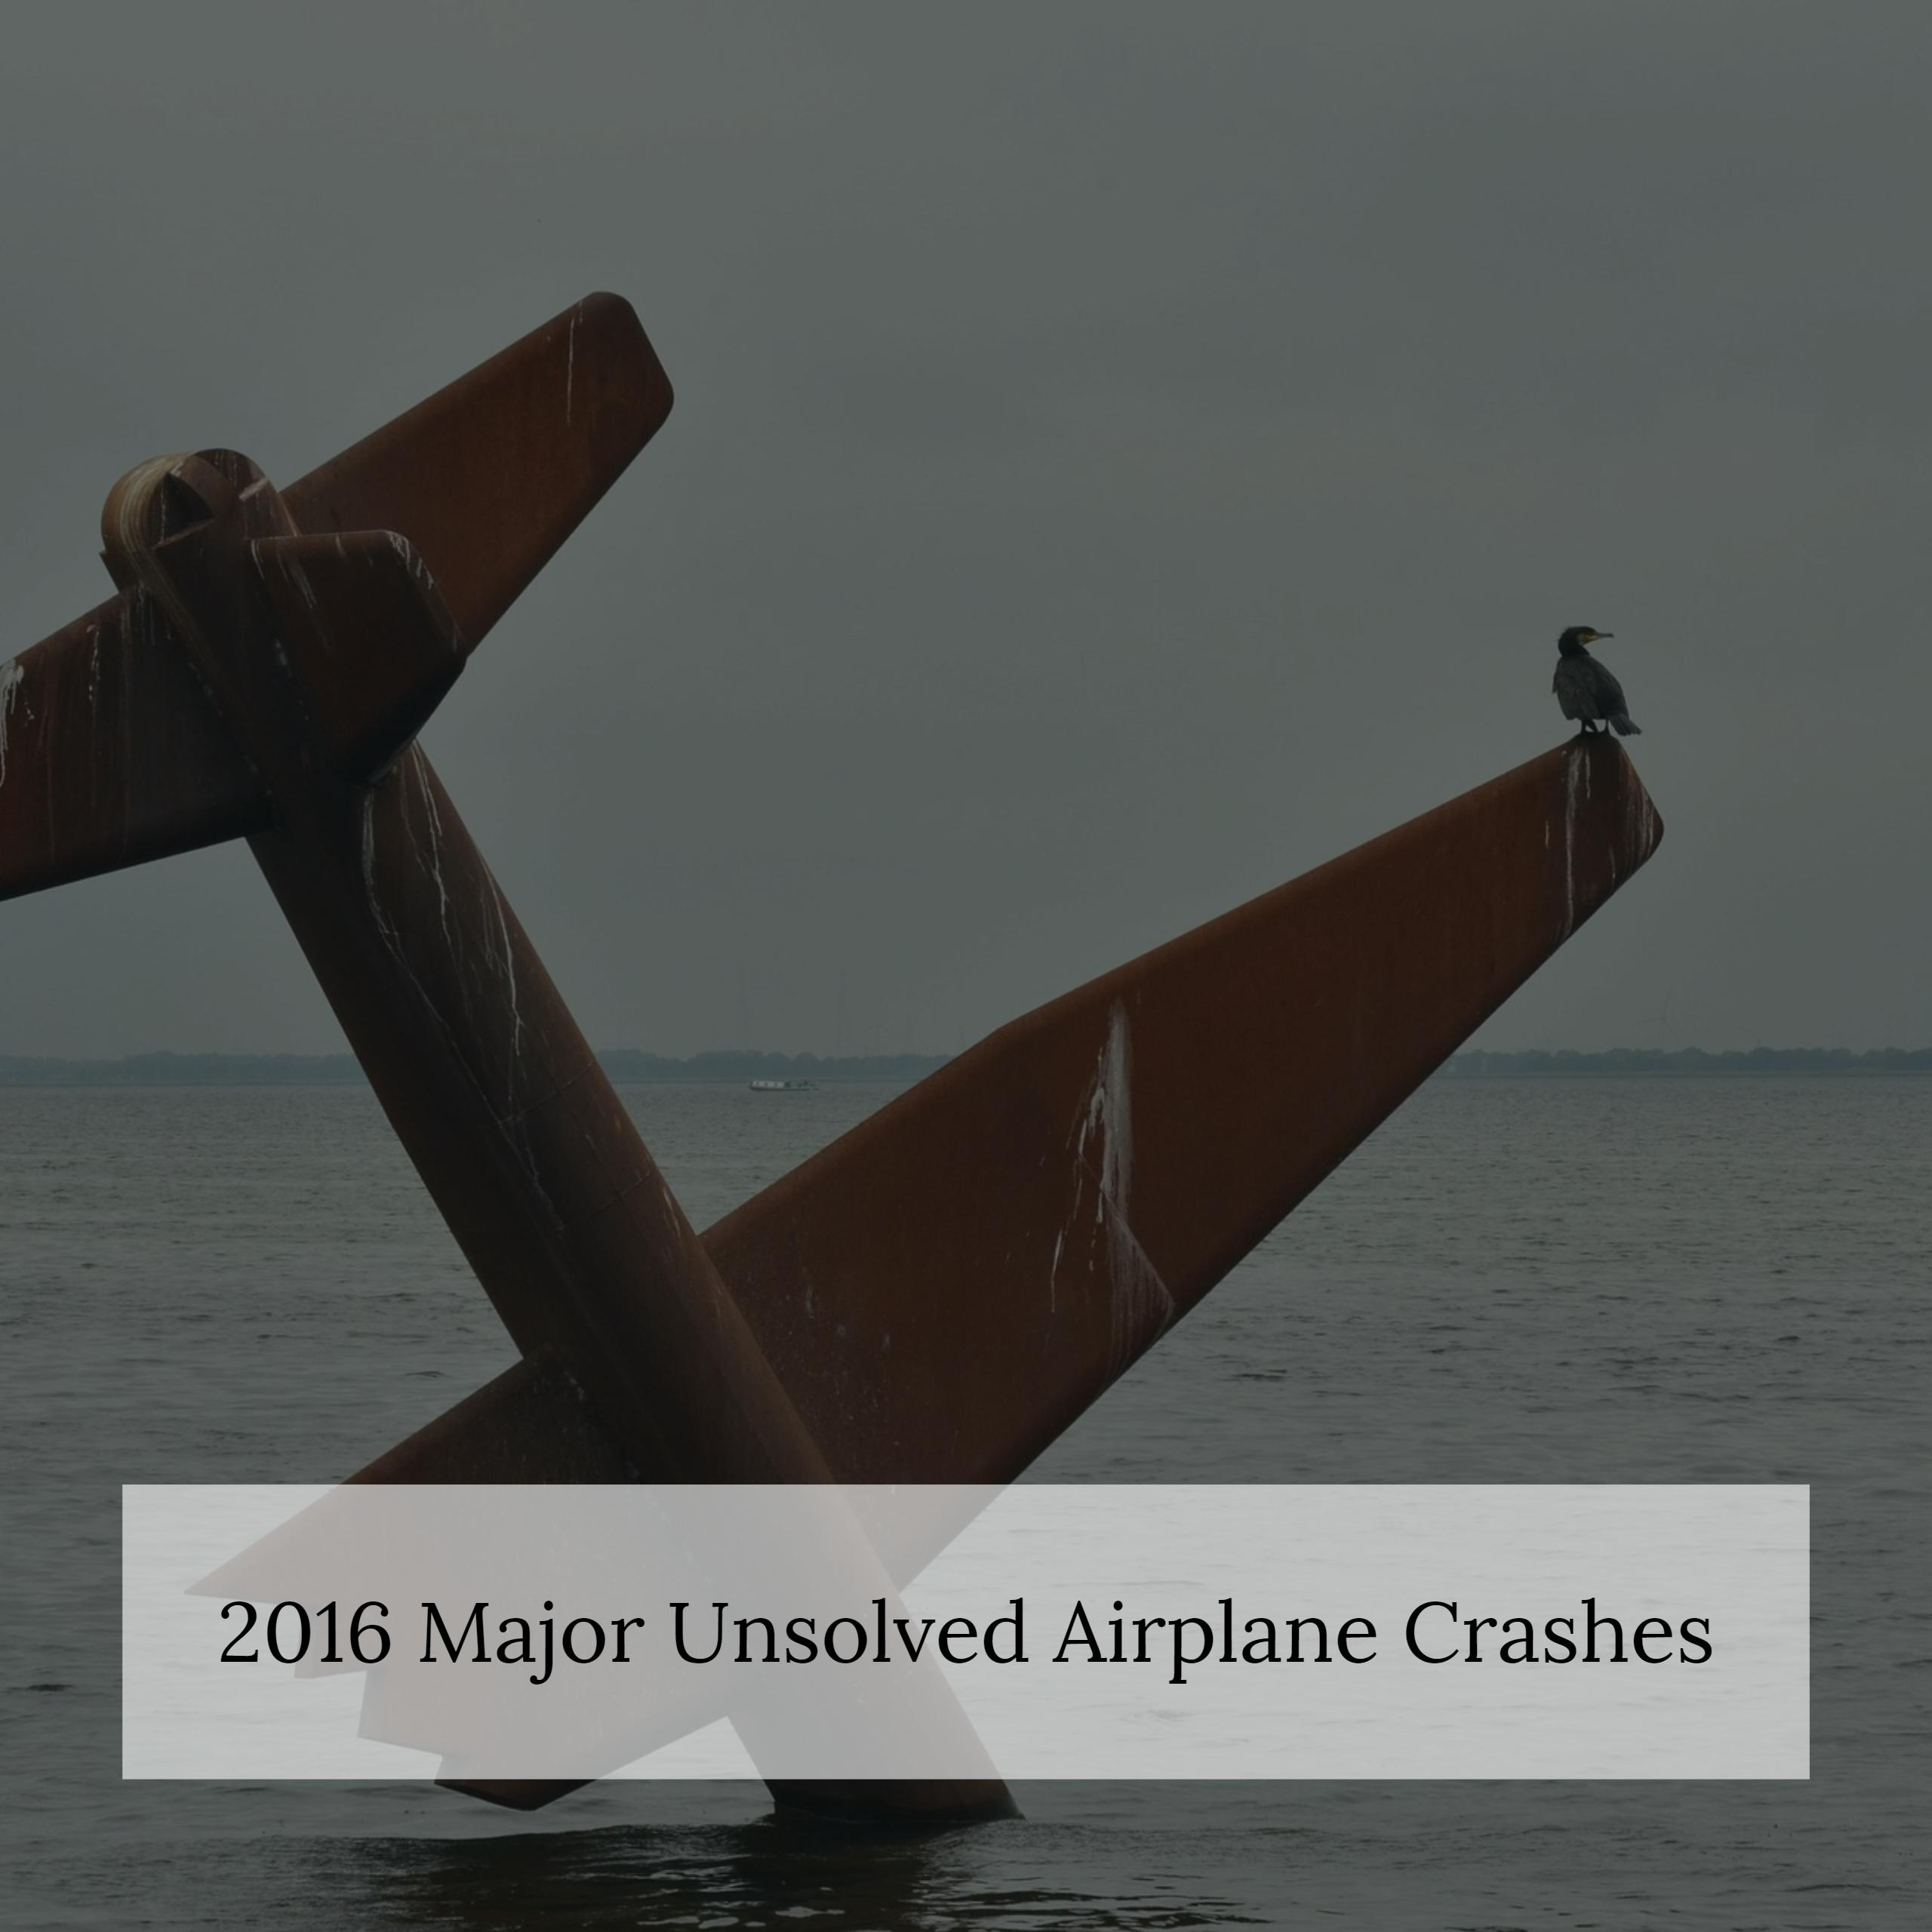 NY Aviation Accident Lawyer Discusses 2016 as the Year of Unsolved Plane Crashes